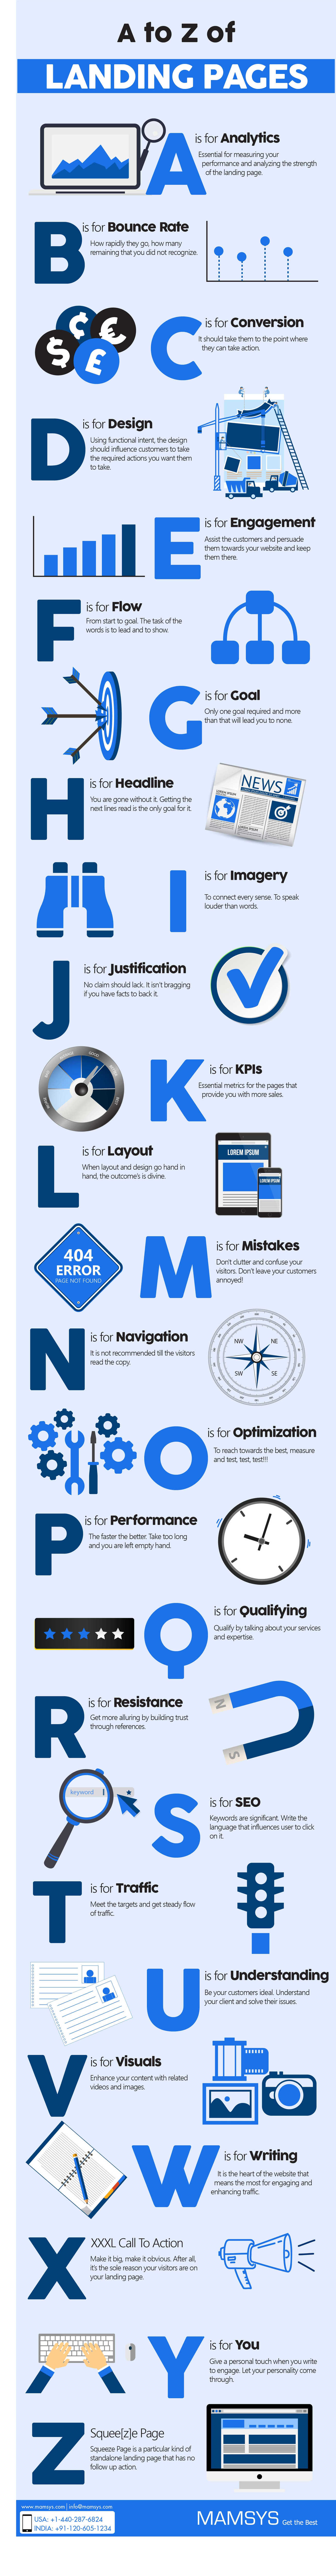 Digital Marketing Landing Pages Infographic